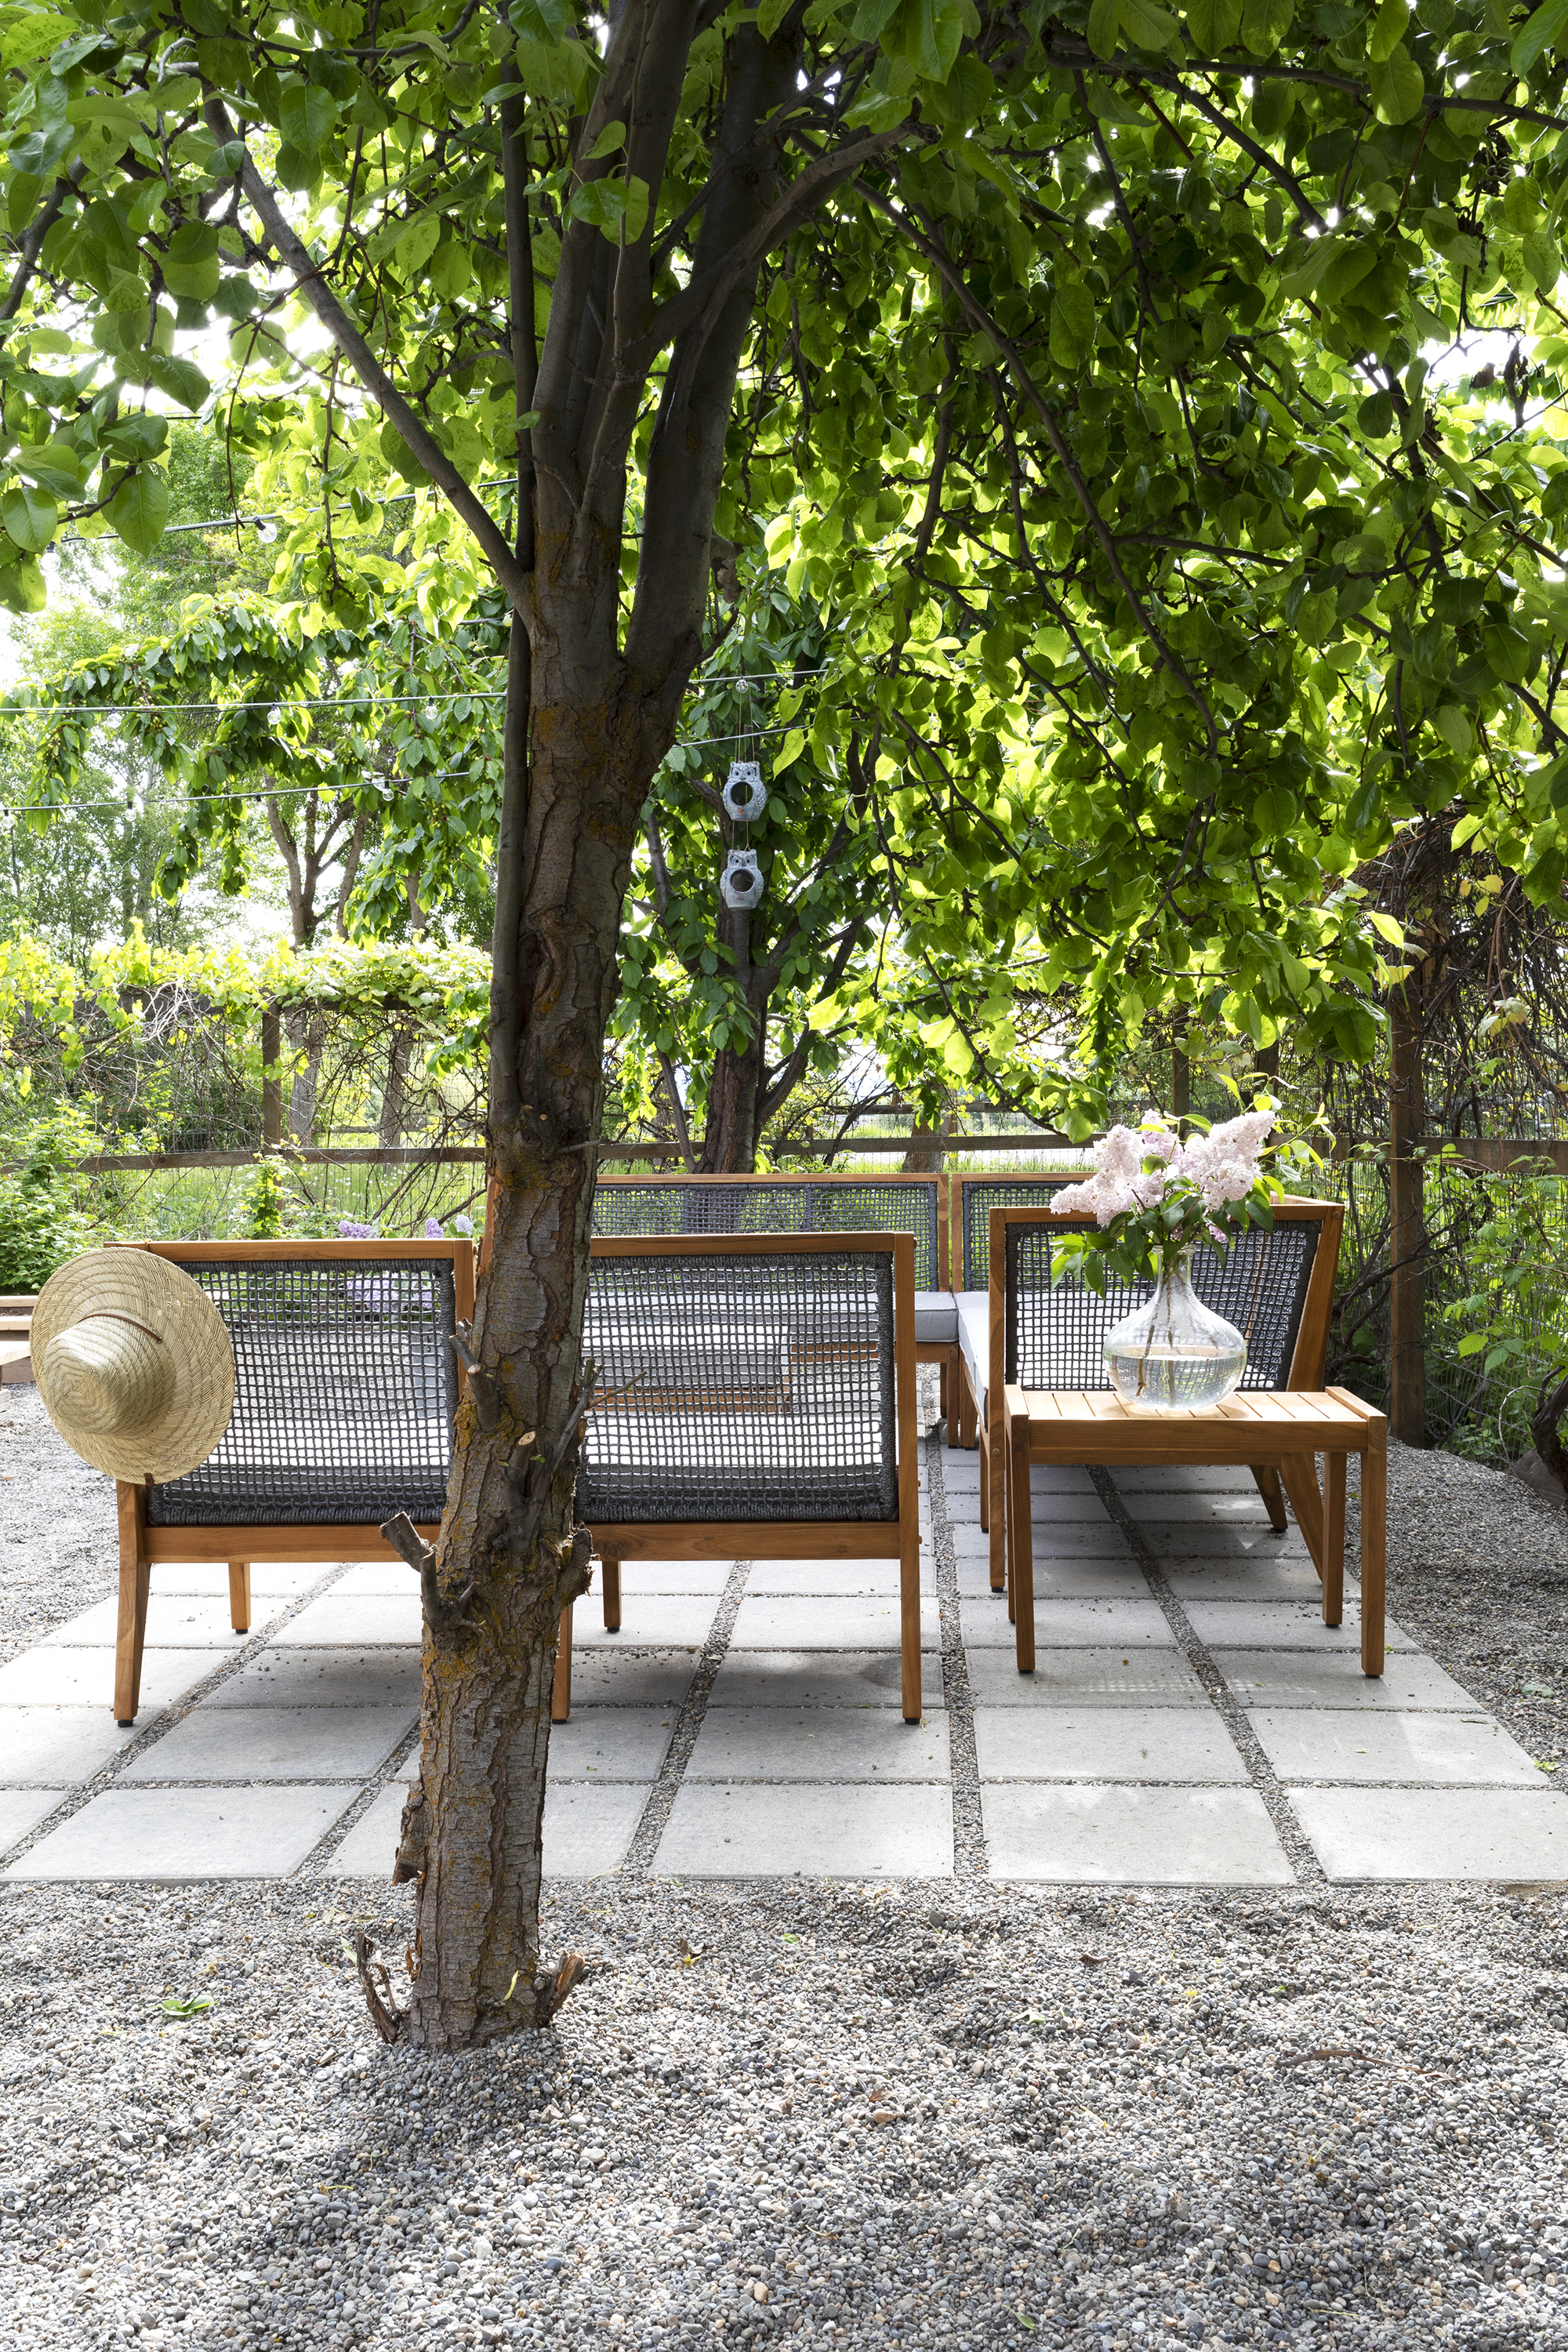 The Grit and Polish - Farmhouse Garden Patio + Pear Tree.jpg